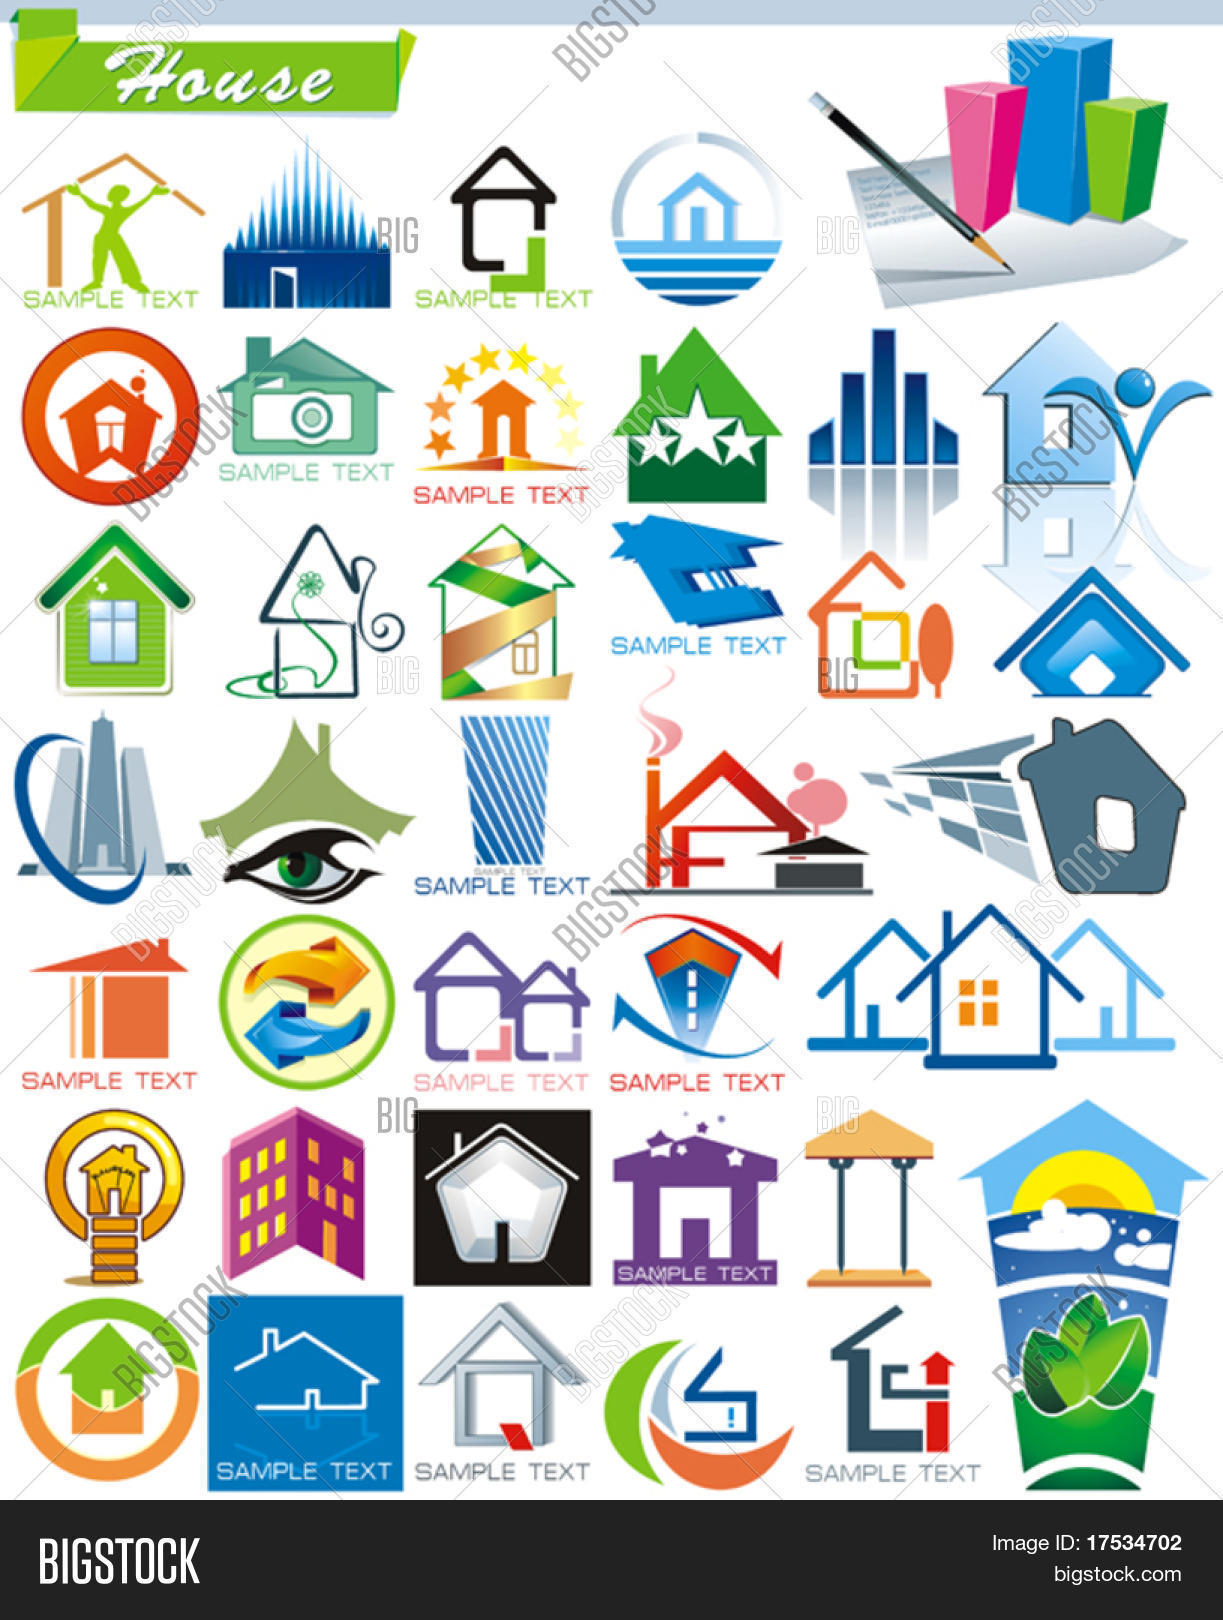 Charming COLLECTION_5 Exclusive Series Of House Vector Icons For Web And  Construction Or Real Estate Concept With